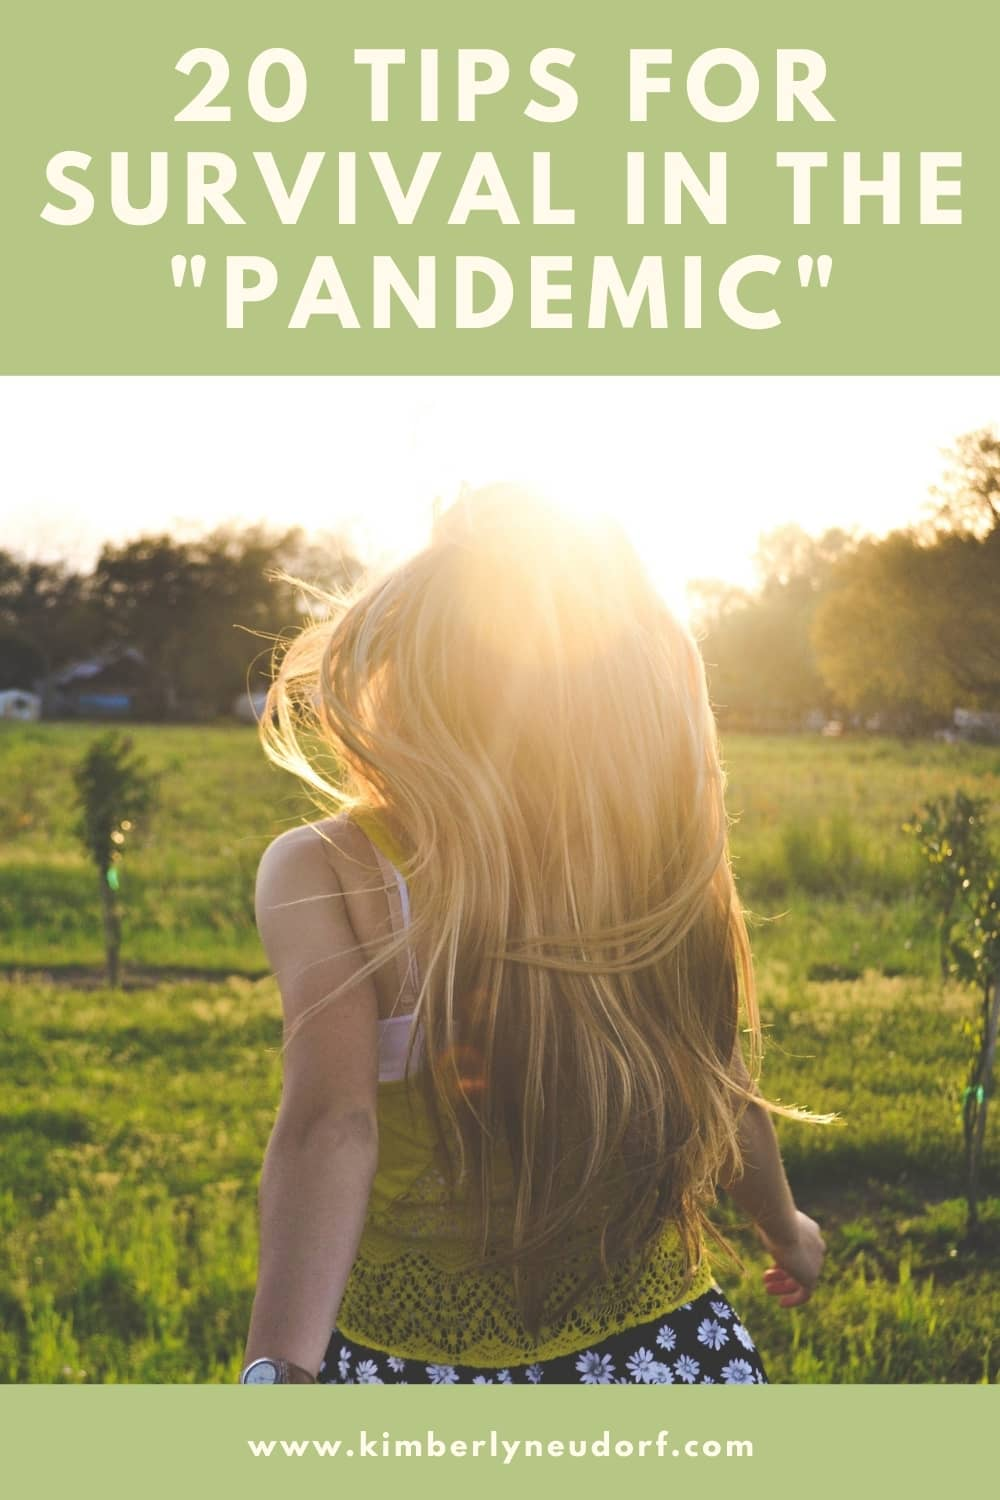 20 tips for survival in the pandemic kimberly neudorf title